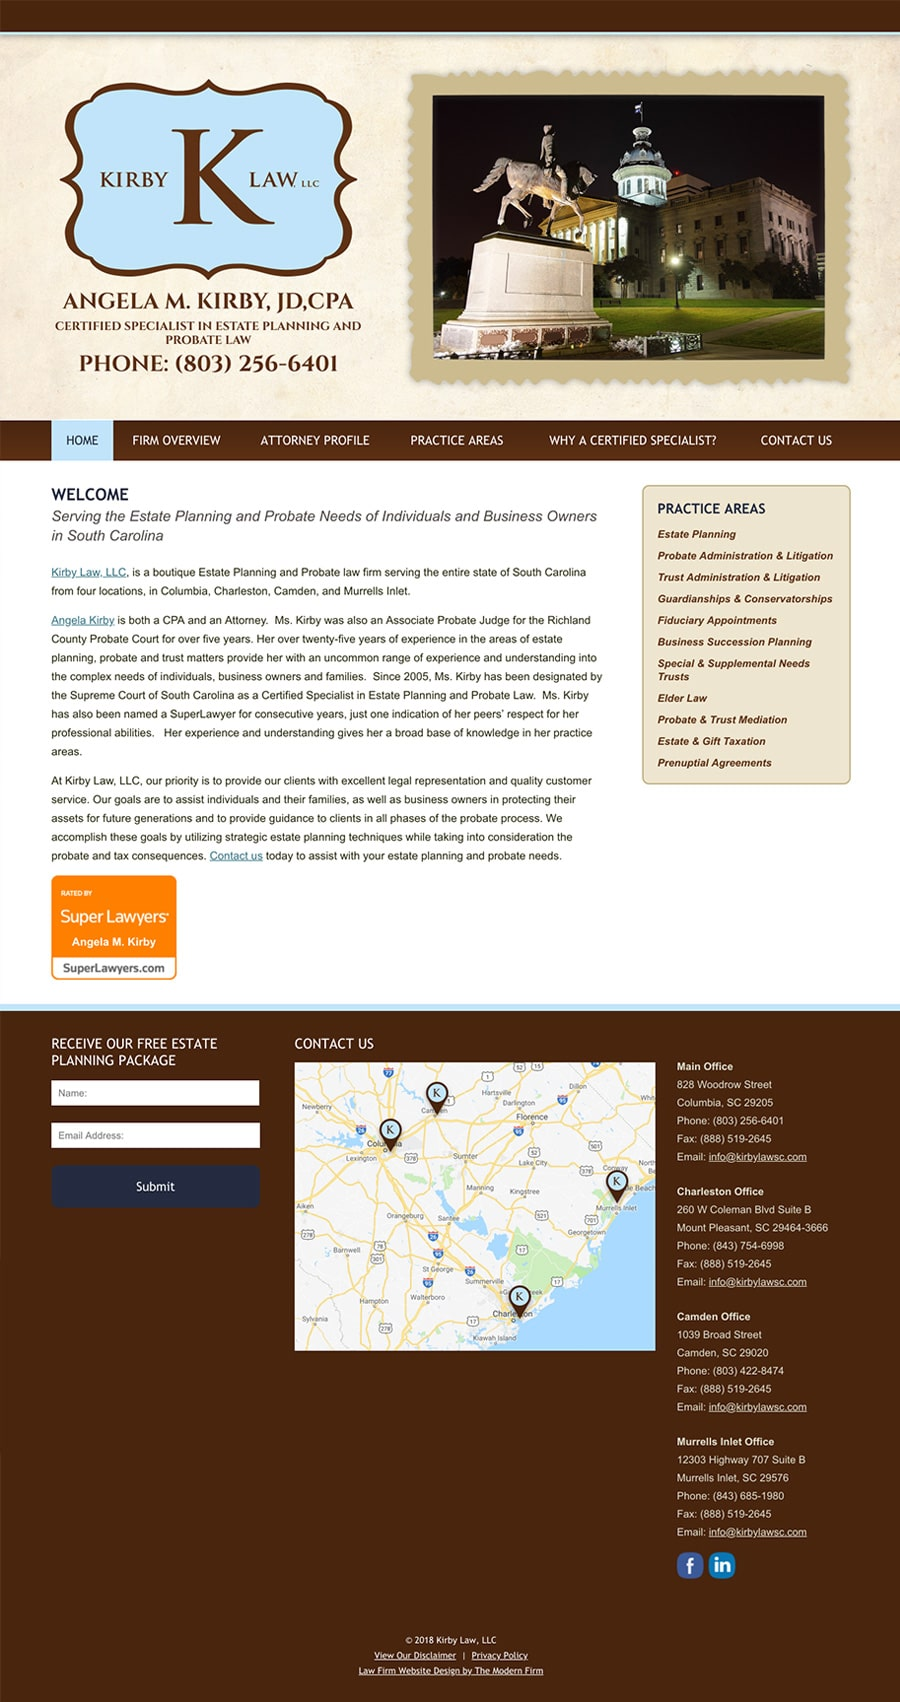 Law Firm Website Design for Kirby Law, LLC